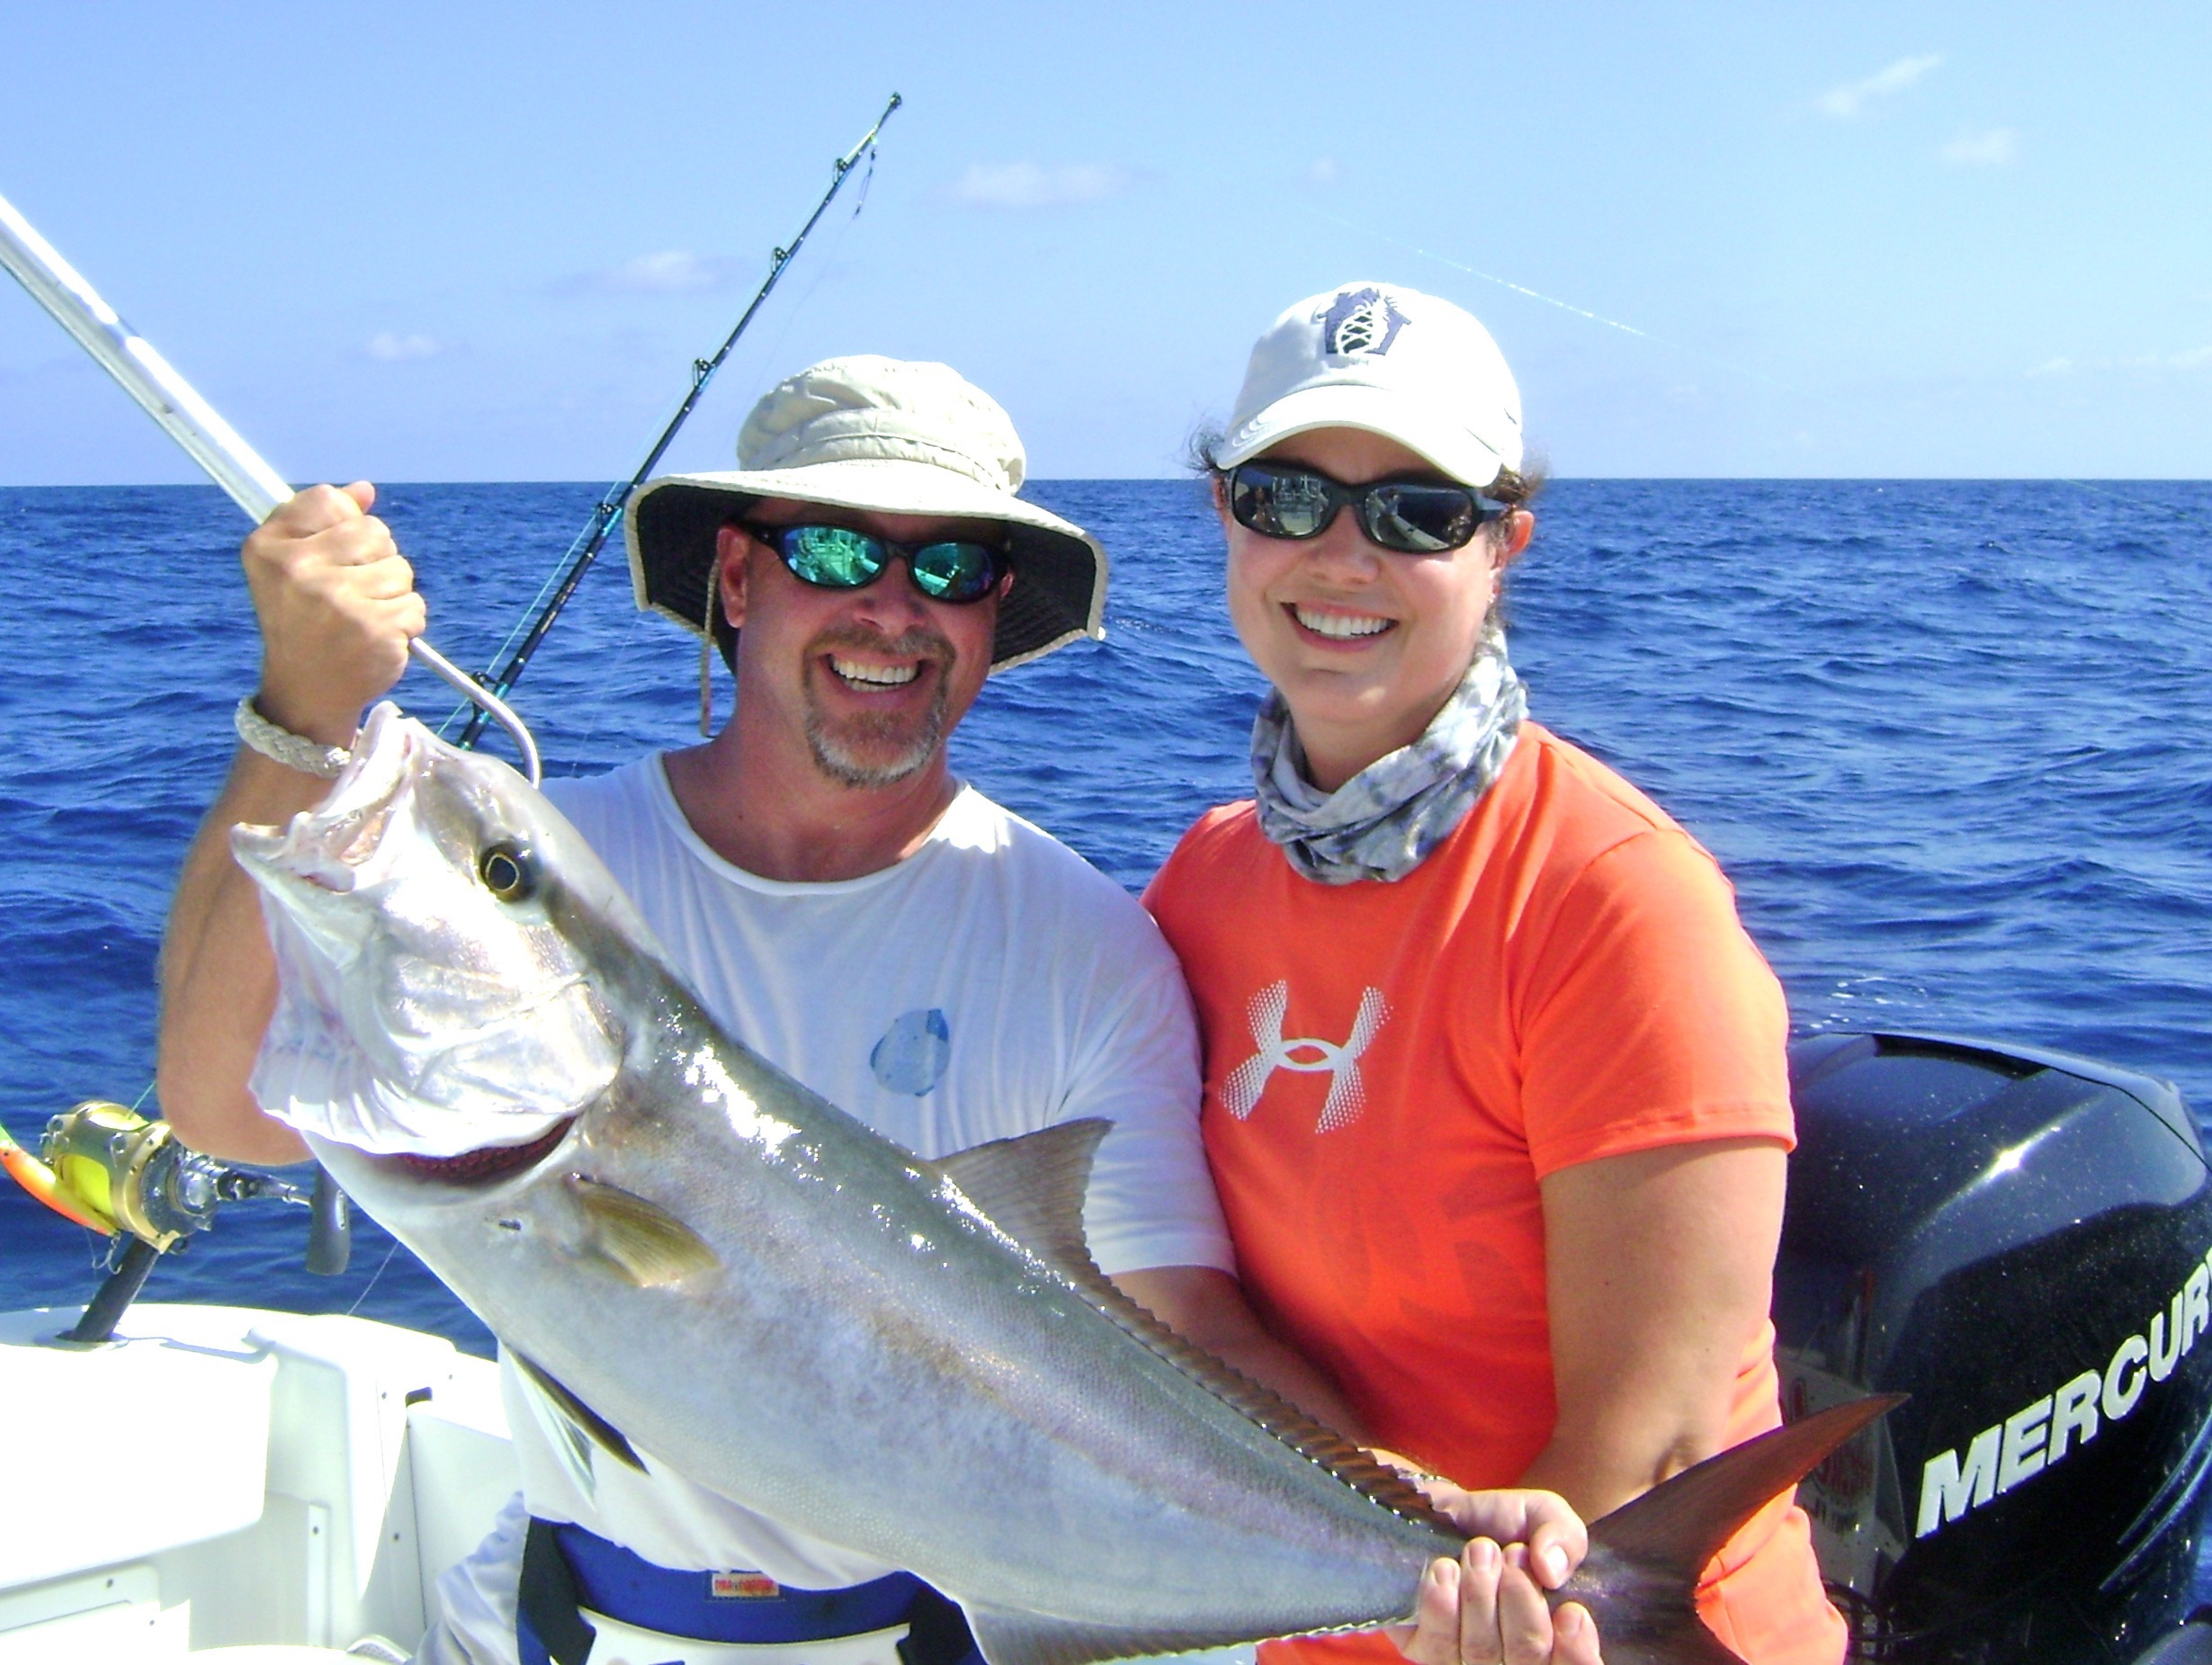 Nicole and Amberjack